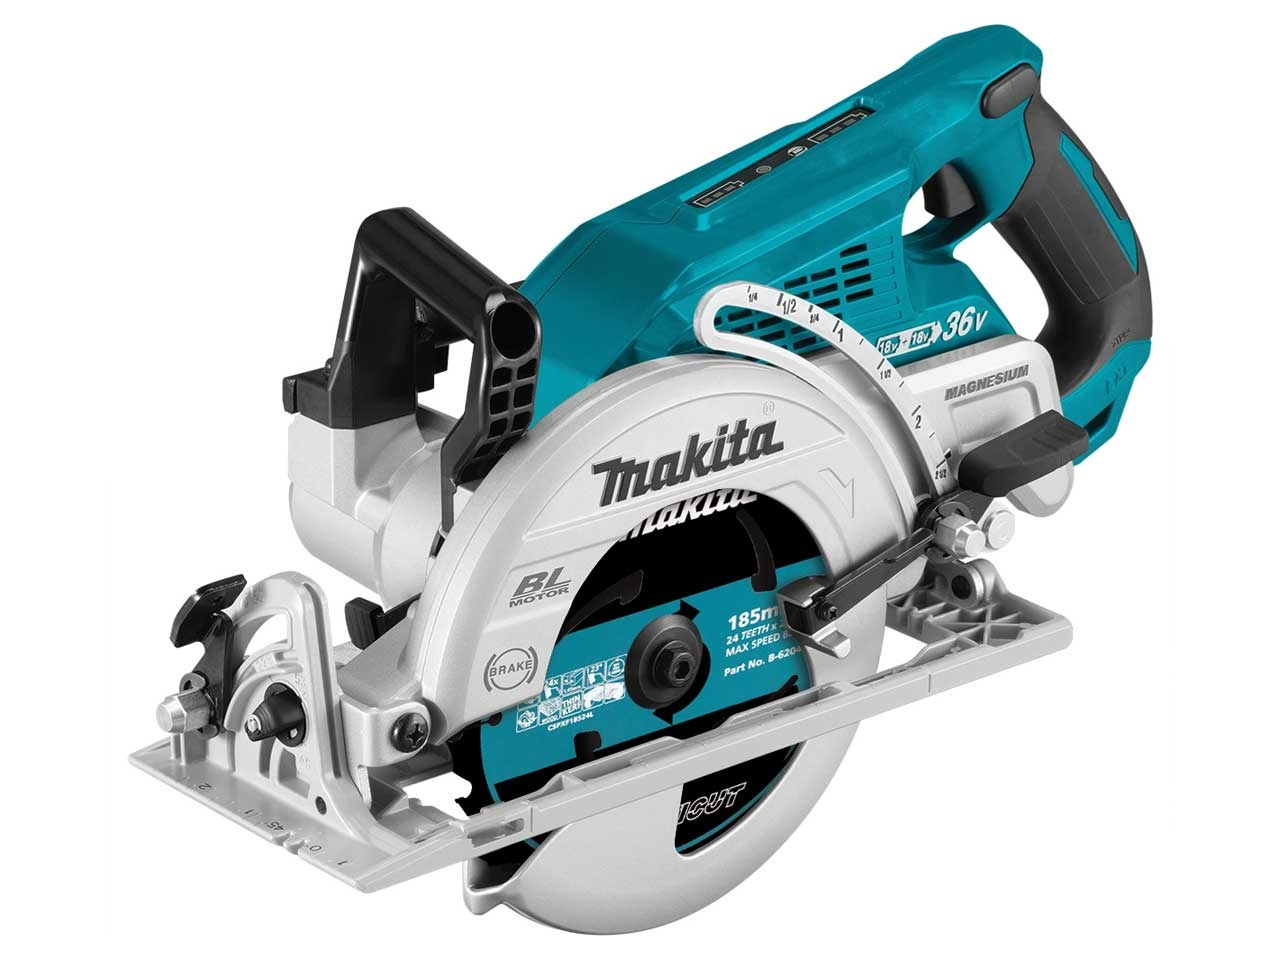 Makita DRS780Z 36V (18V Twin) 185mm Brushless Circular Saw LXT - Body Only